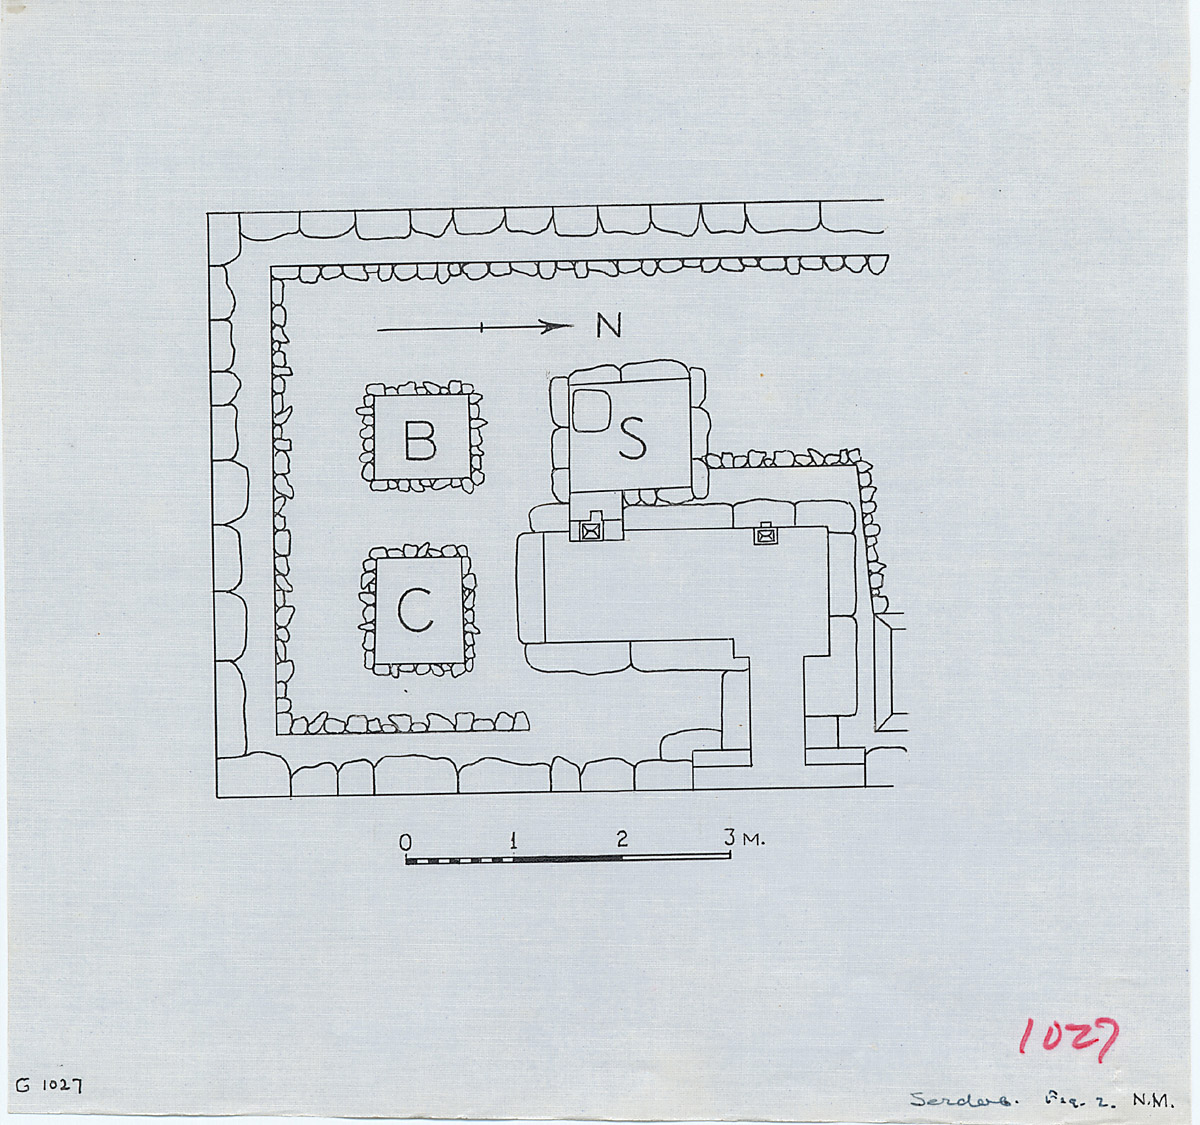 Maps and plans: G 1027, Plan (partial)